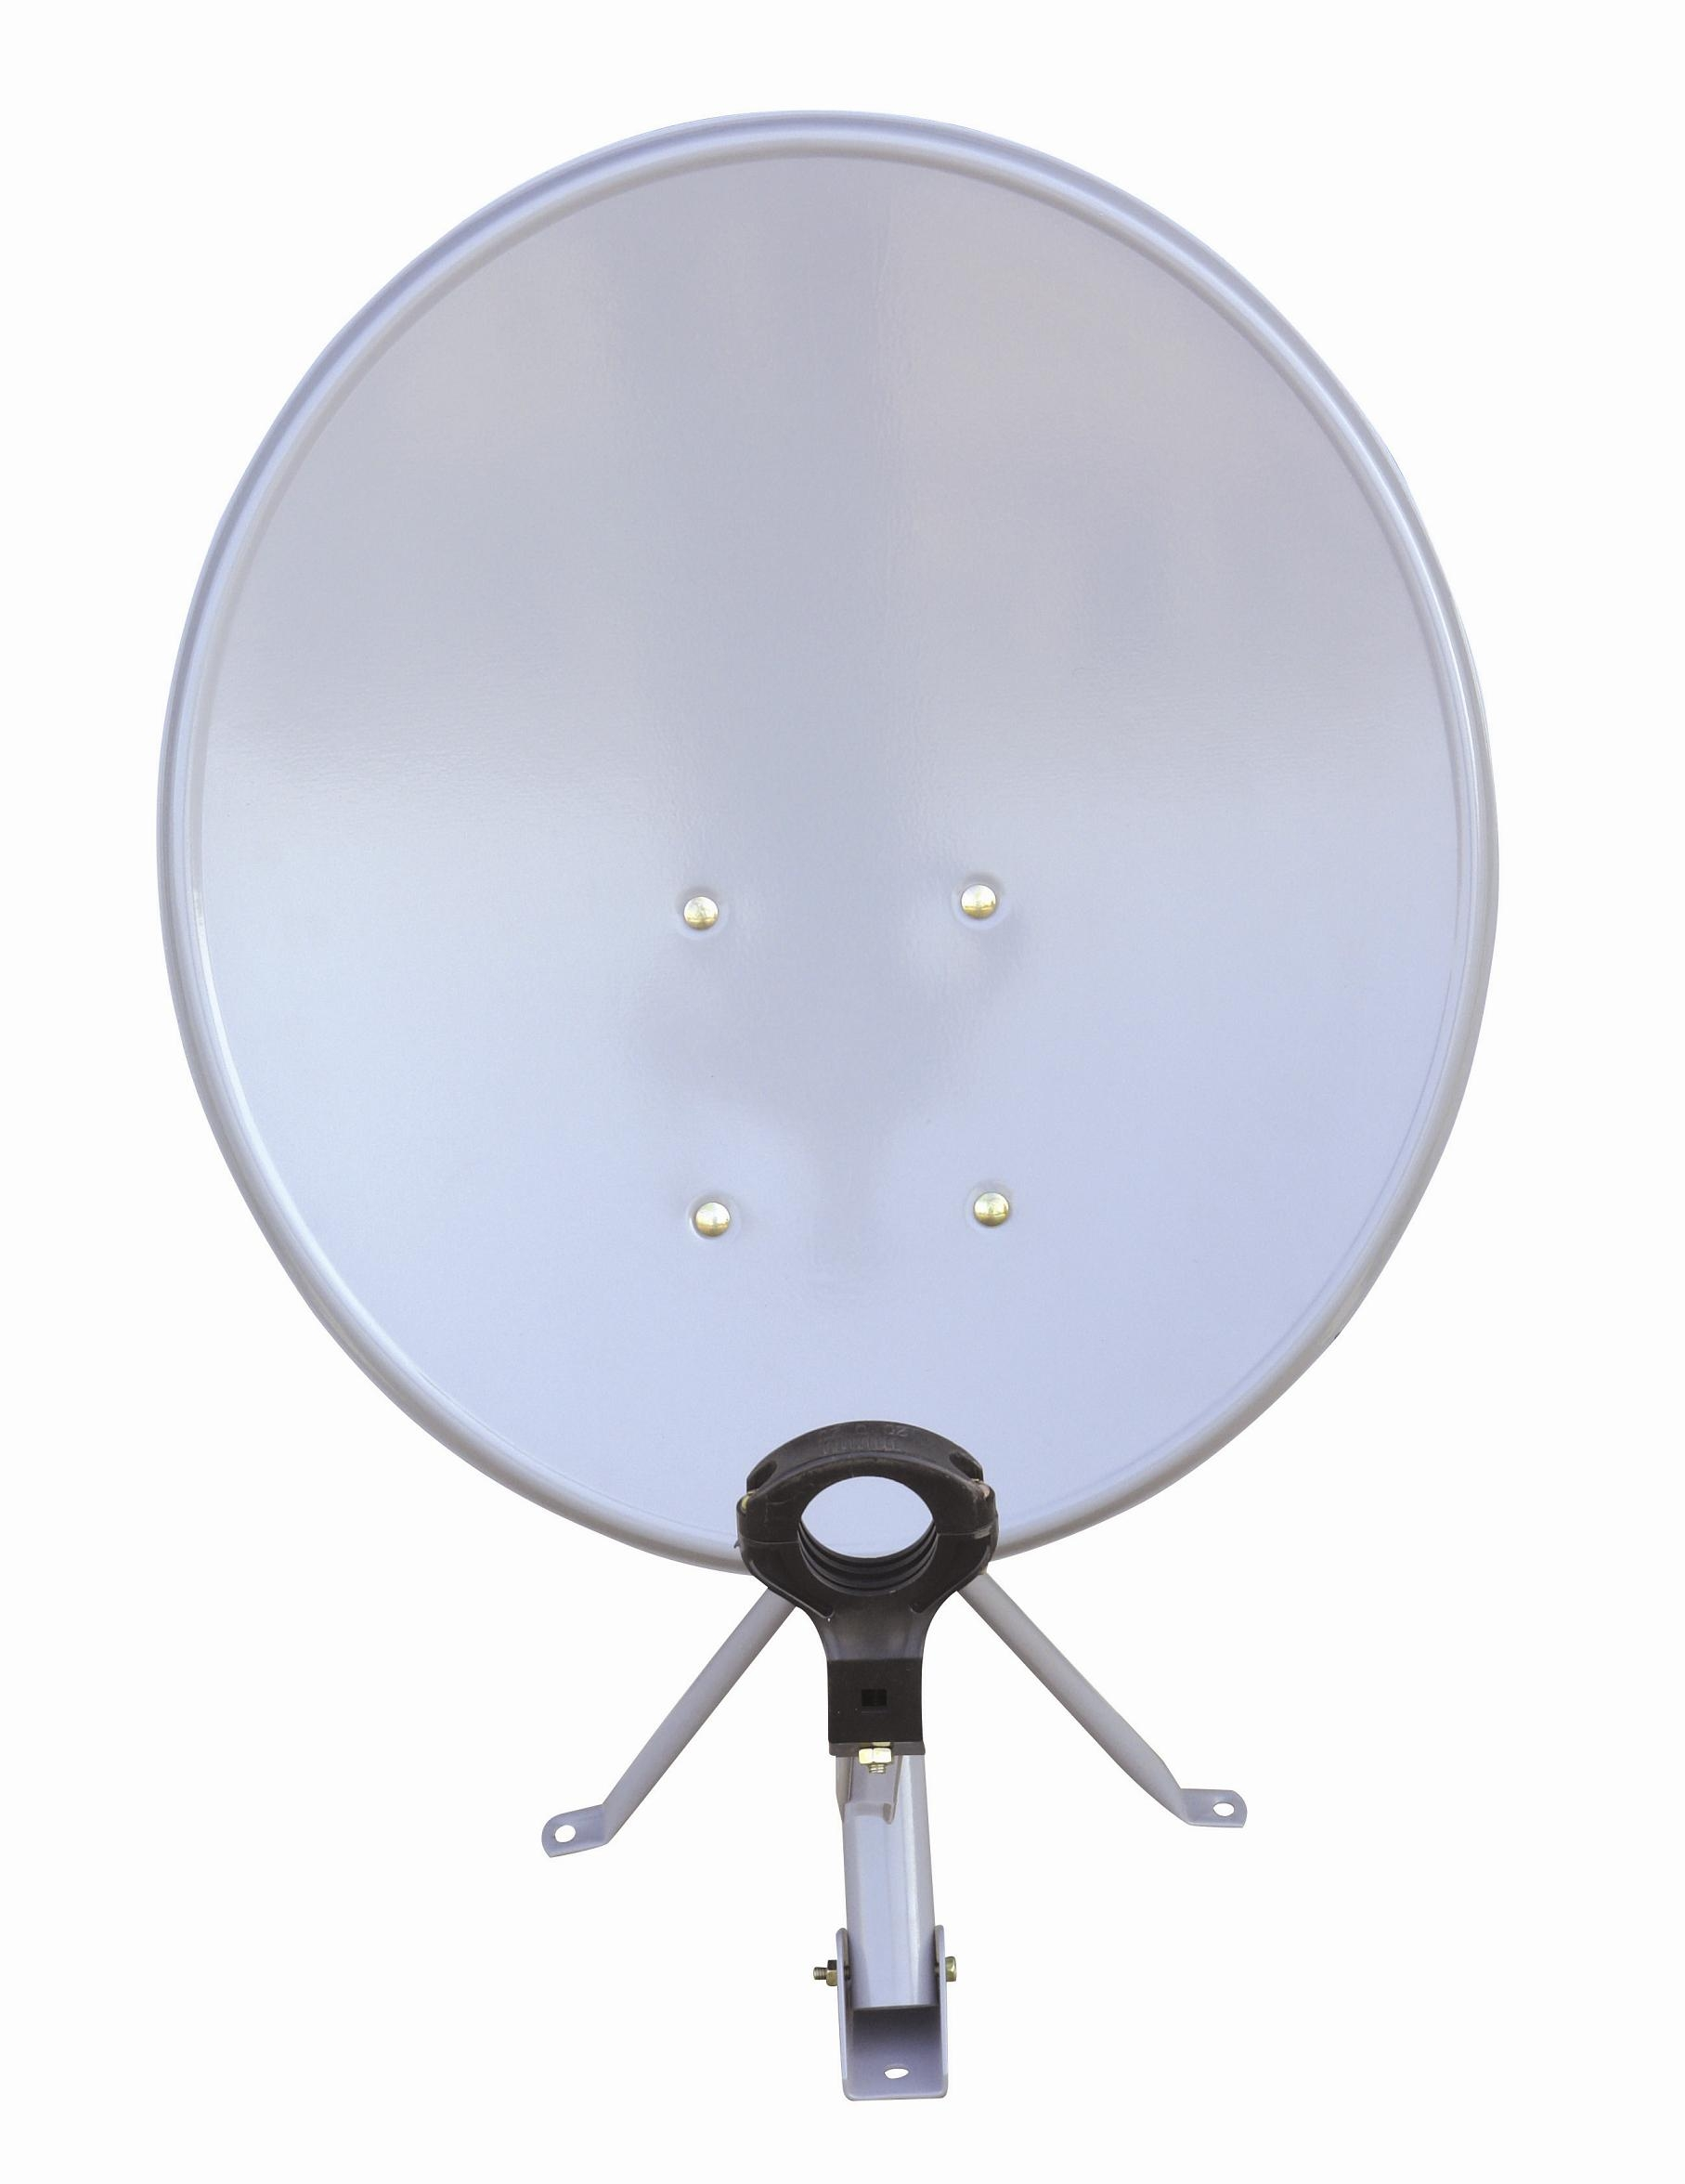 ku band 60cm TV satellite antenna